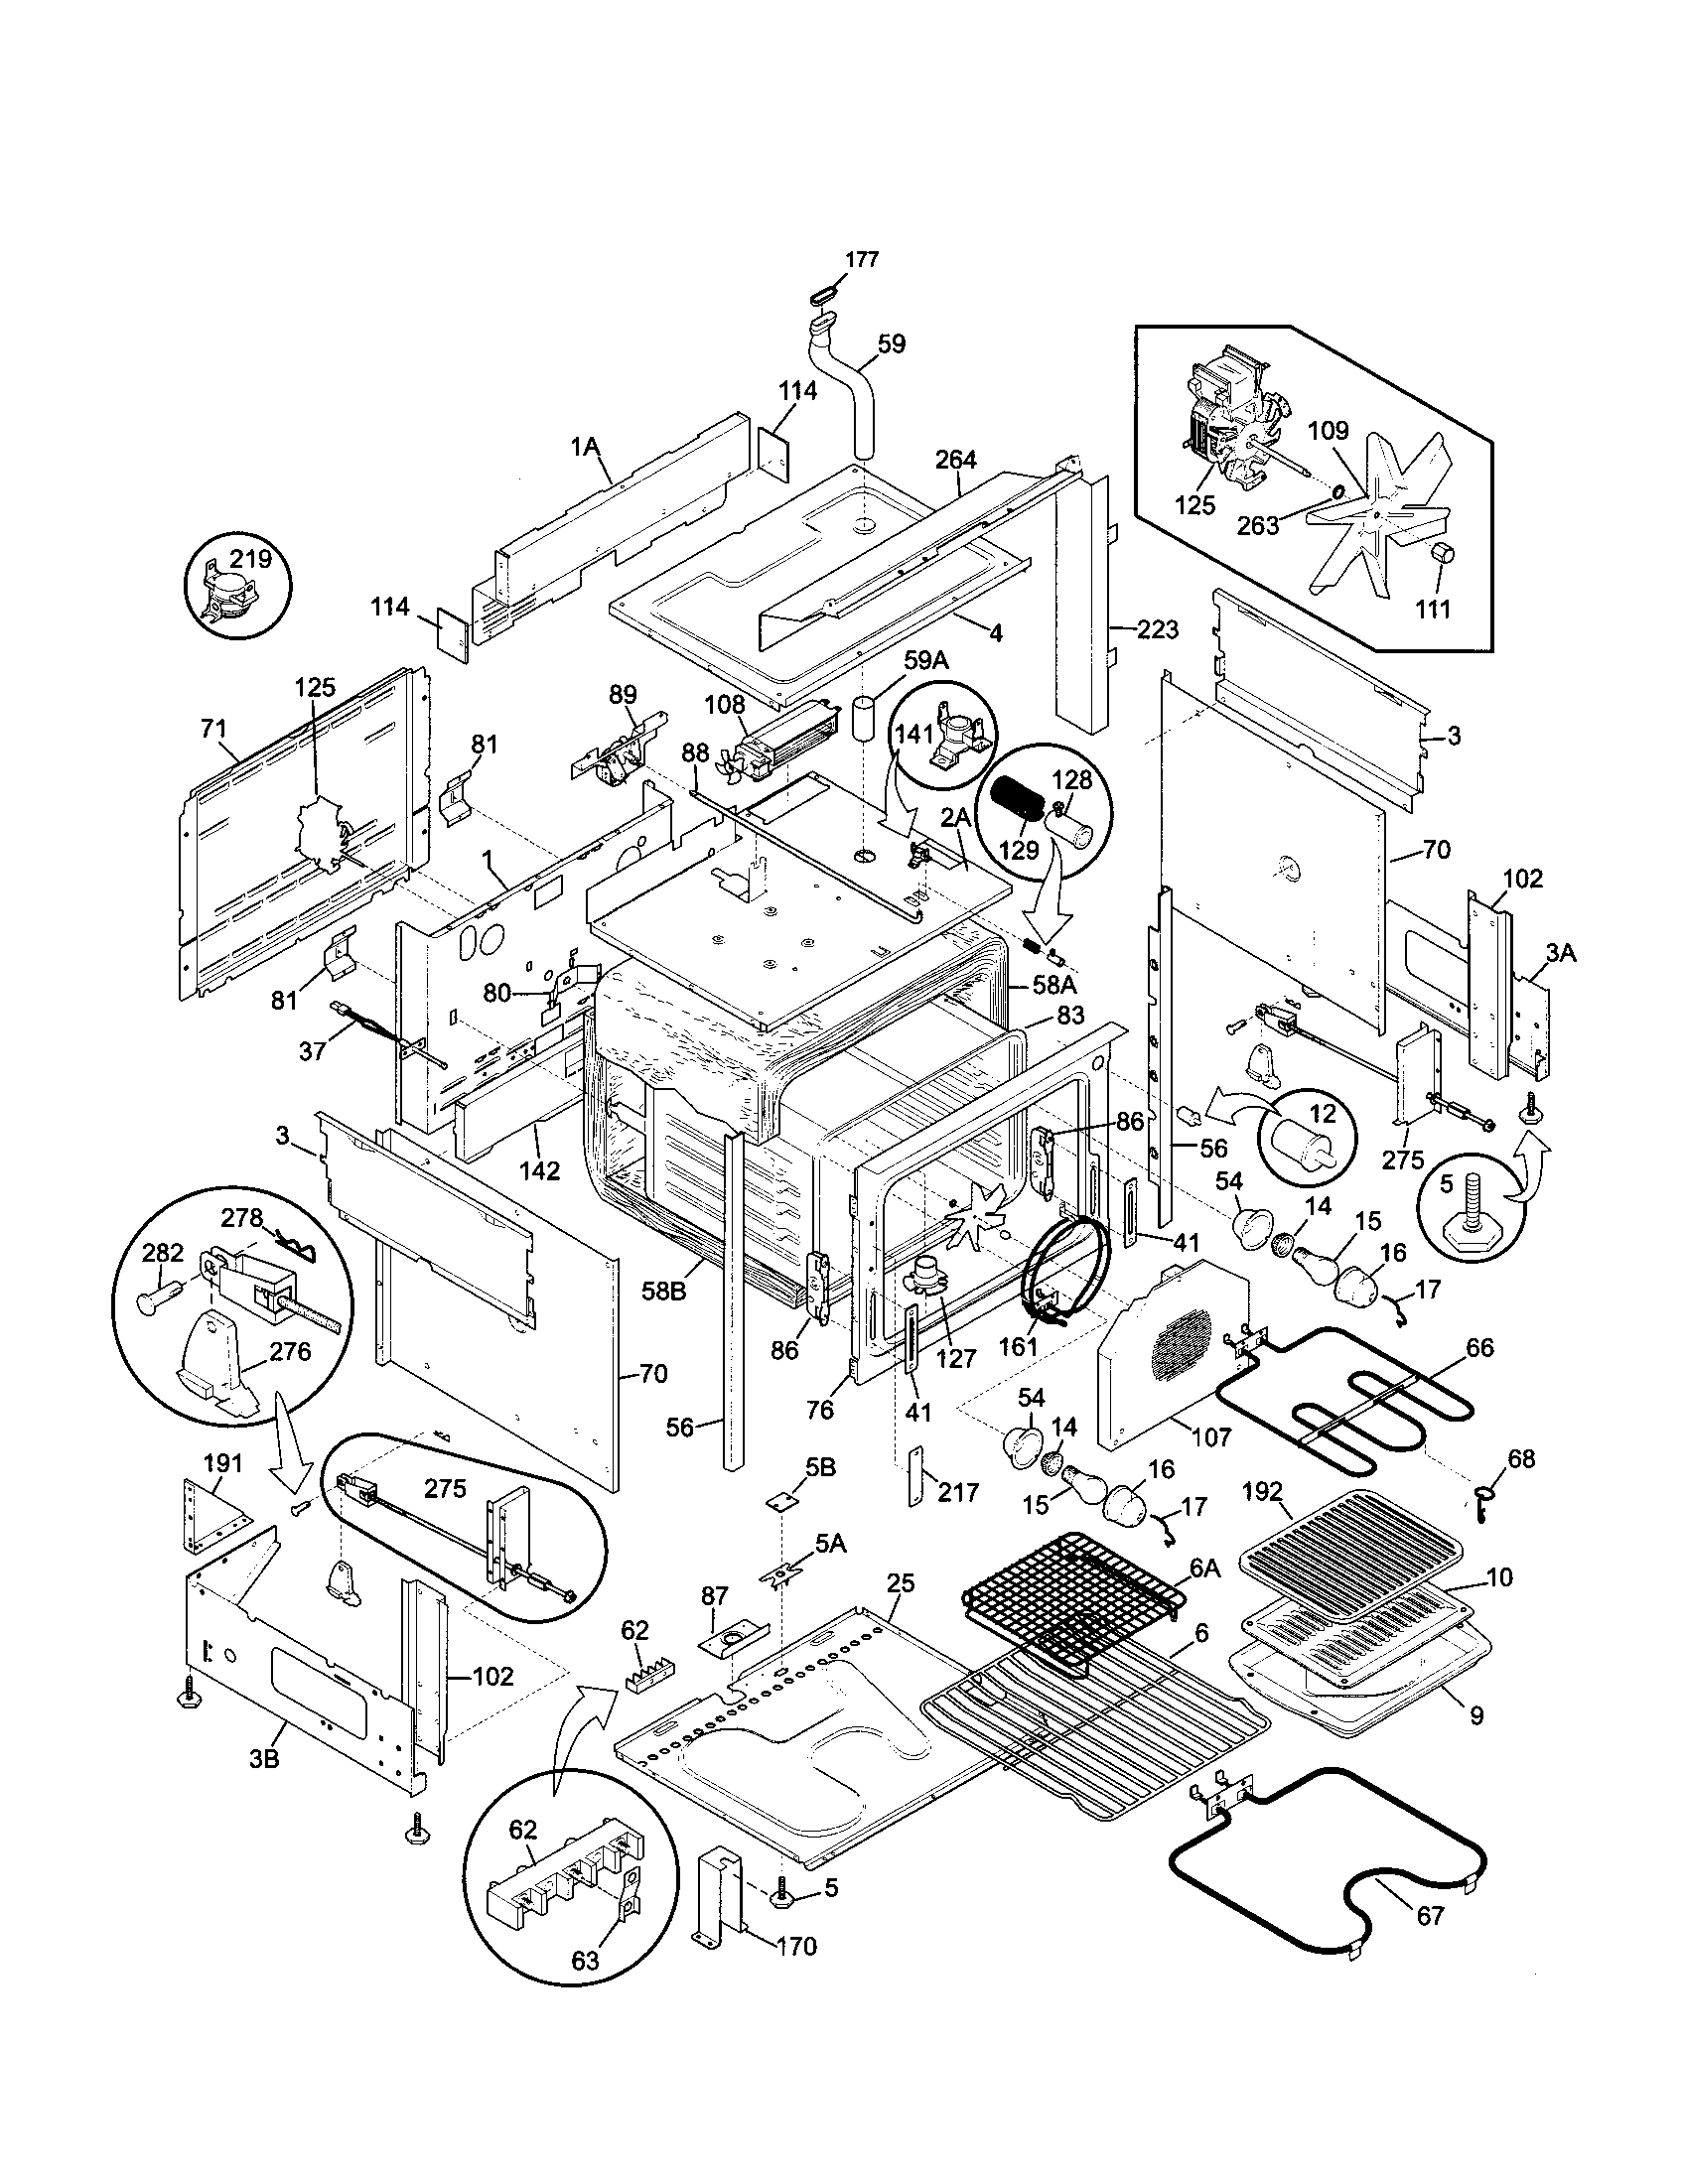 body parts kenmore 79046819992 elite dual fuel slide in range timer stove wiring diagram for kenmore elite refrigerator at readyjetset.co